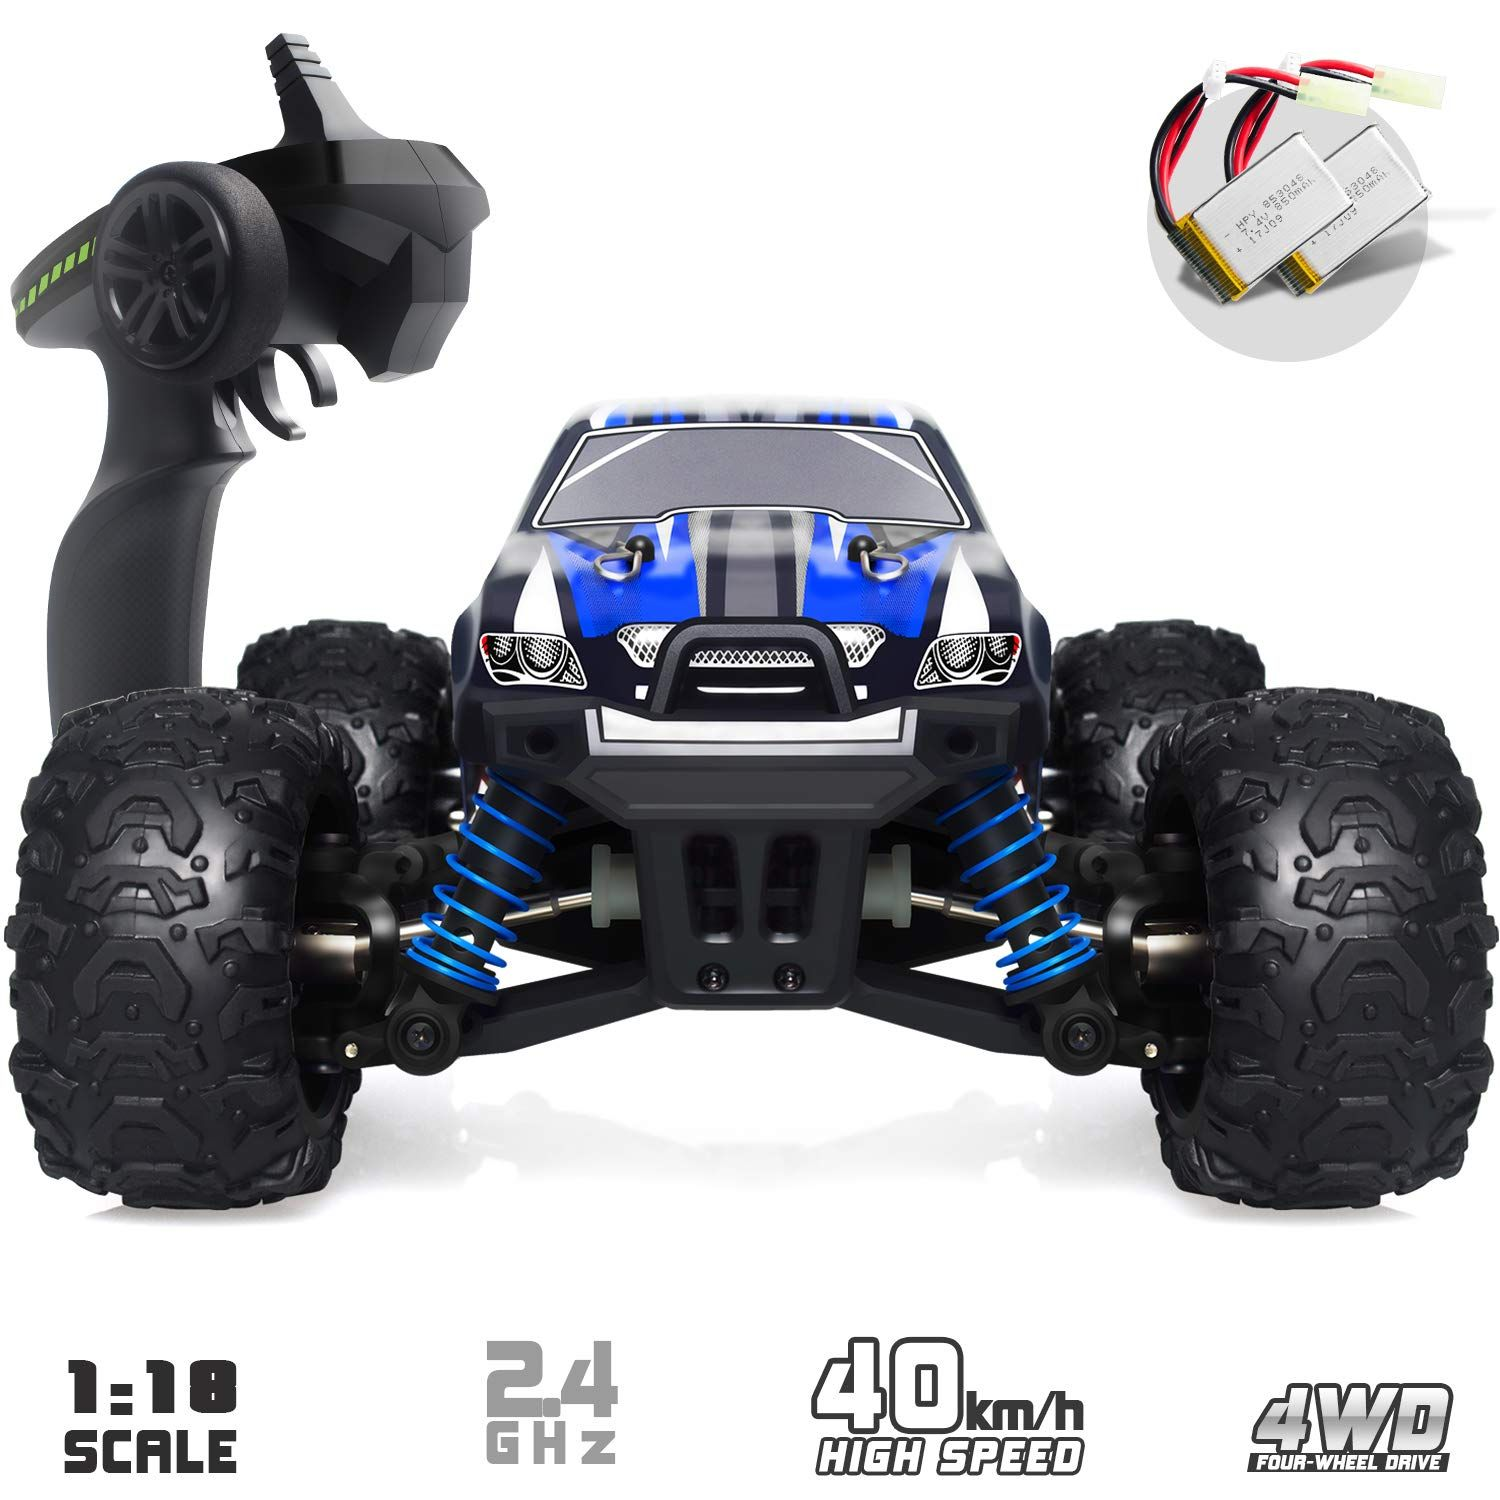 Vcanny Remote Control Car Terrain Rc Cars Electric Remote Control Off Road Monster Truck 1 18 Scal In 2020 Remote Control Trucks Monster Trucks Remote Control Cars